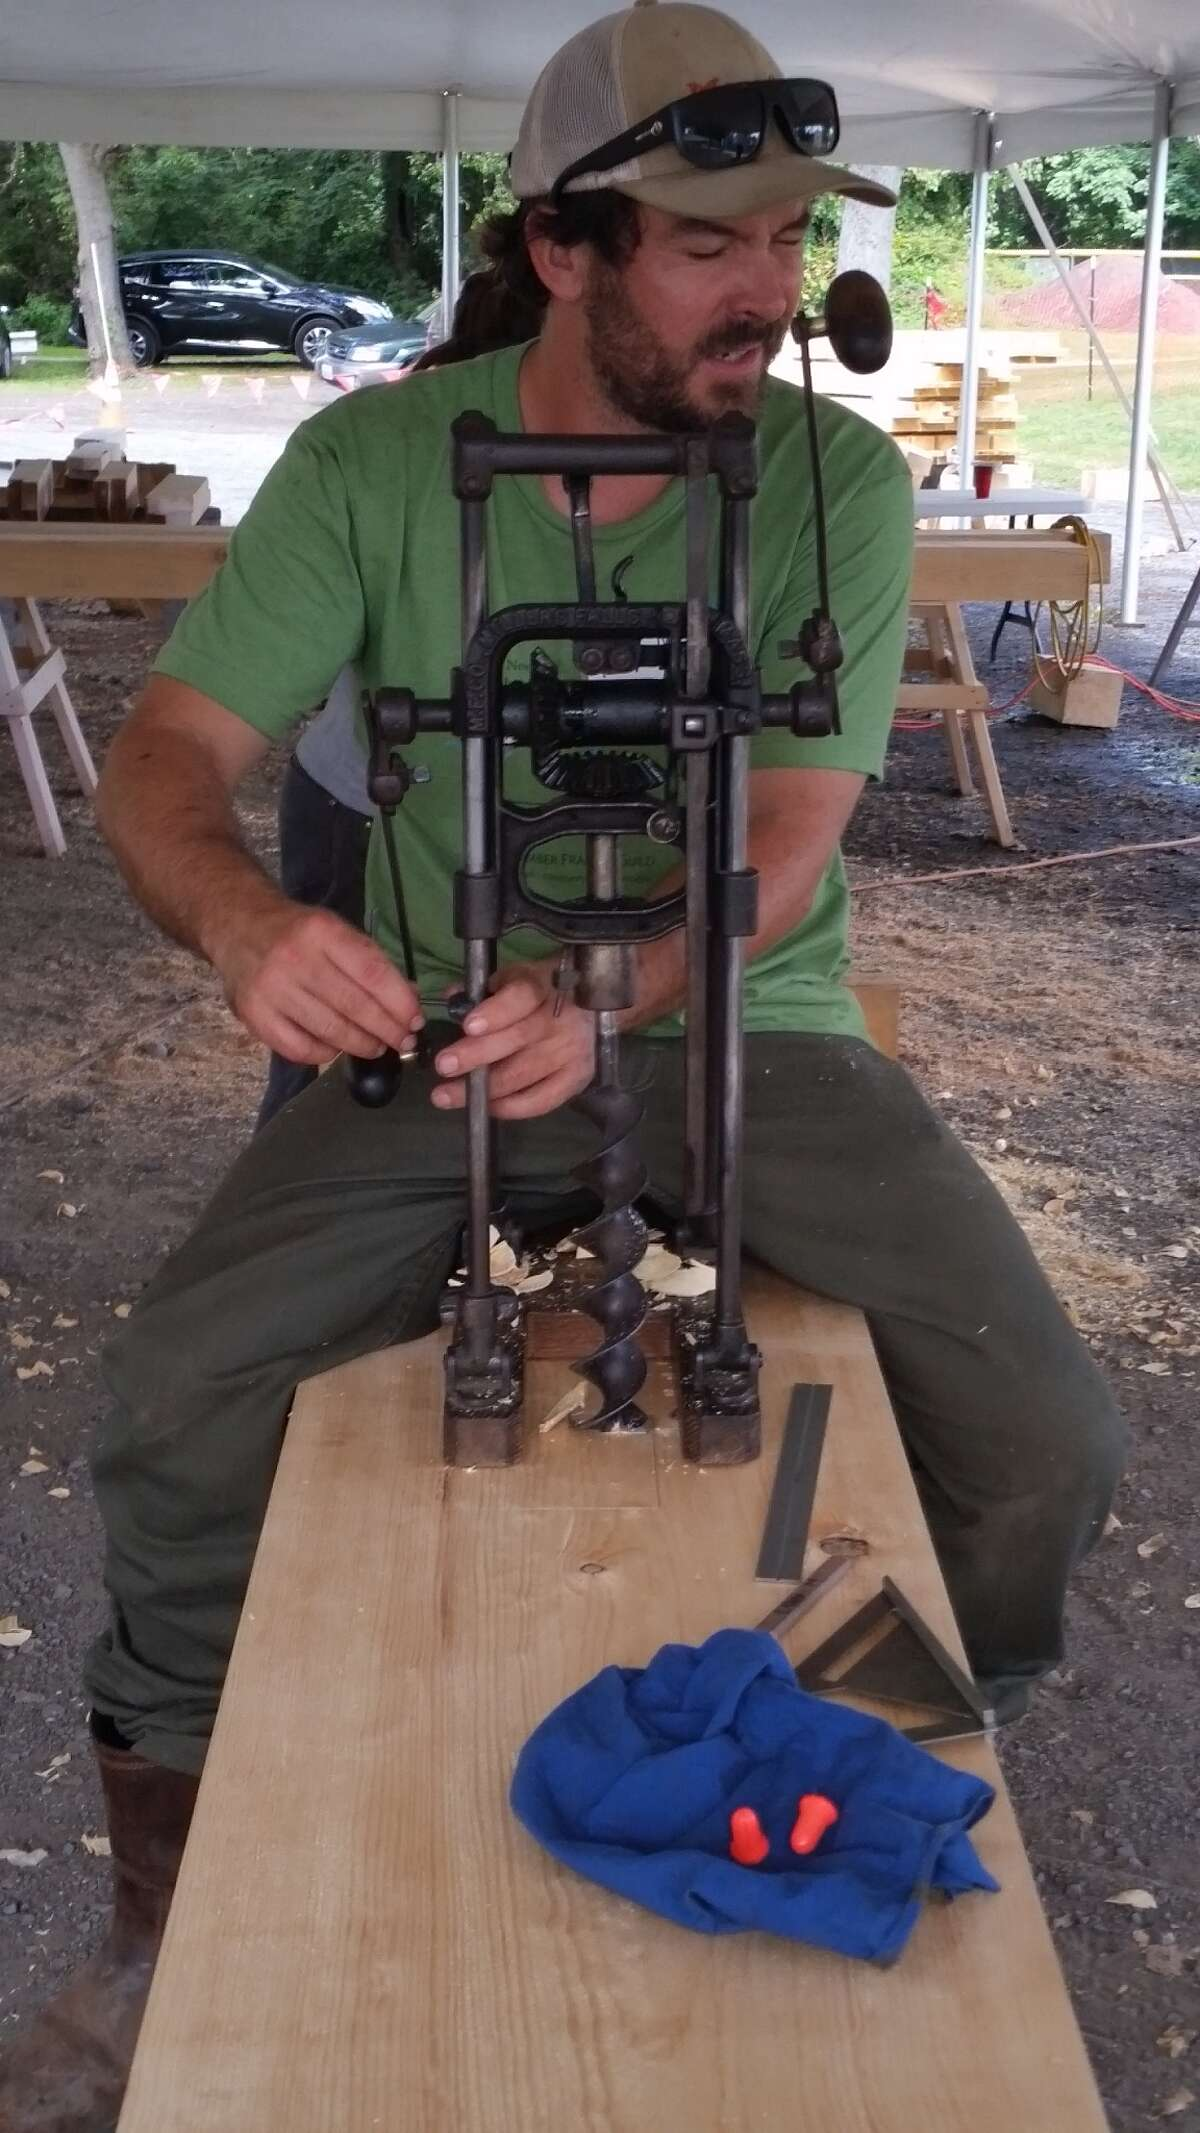 A craftsman with the Timber Framers Guild participates in a workshop with Historic Hudson-Hoosic Partnership last Wednesday SEPT 14 at Fort Hardy Park in Schuylerville to prepare beams for the raising of an original timber frame structure that will be the home of the new Champlain Canal Gateway Visitors Center.